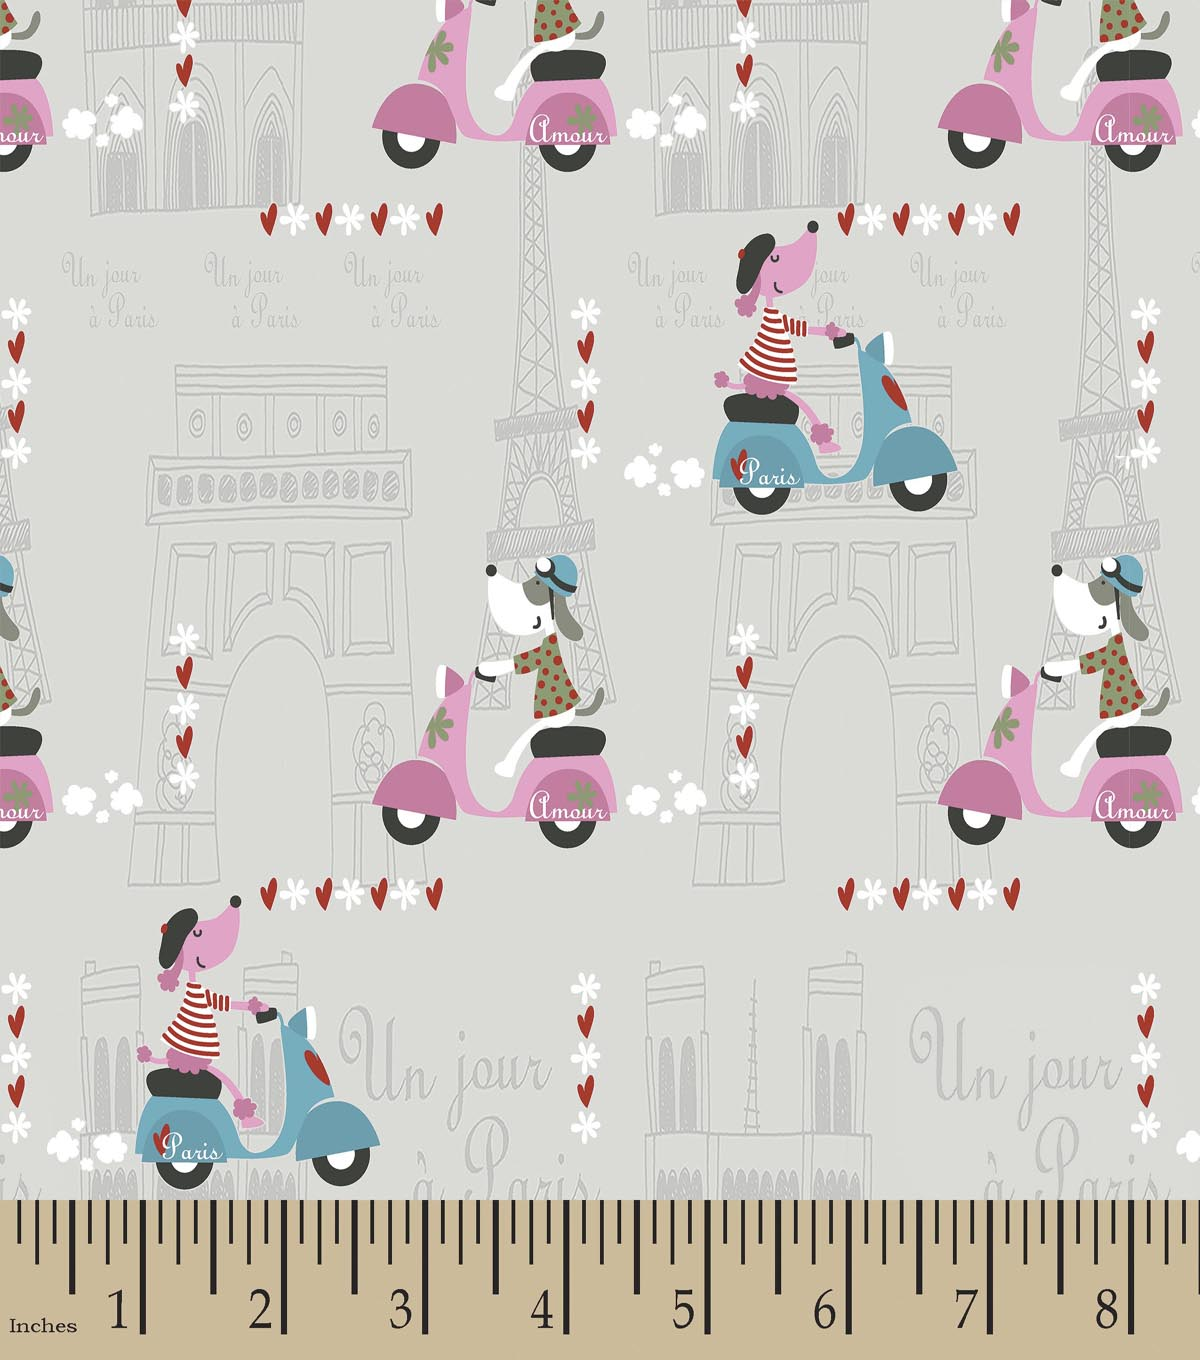 Amour Dog in Paris Print Fabric